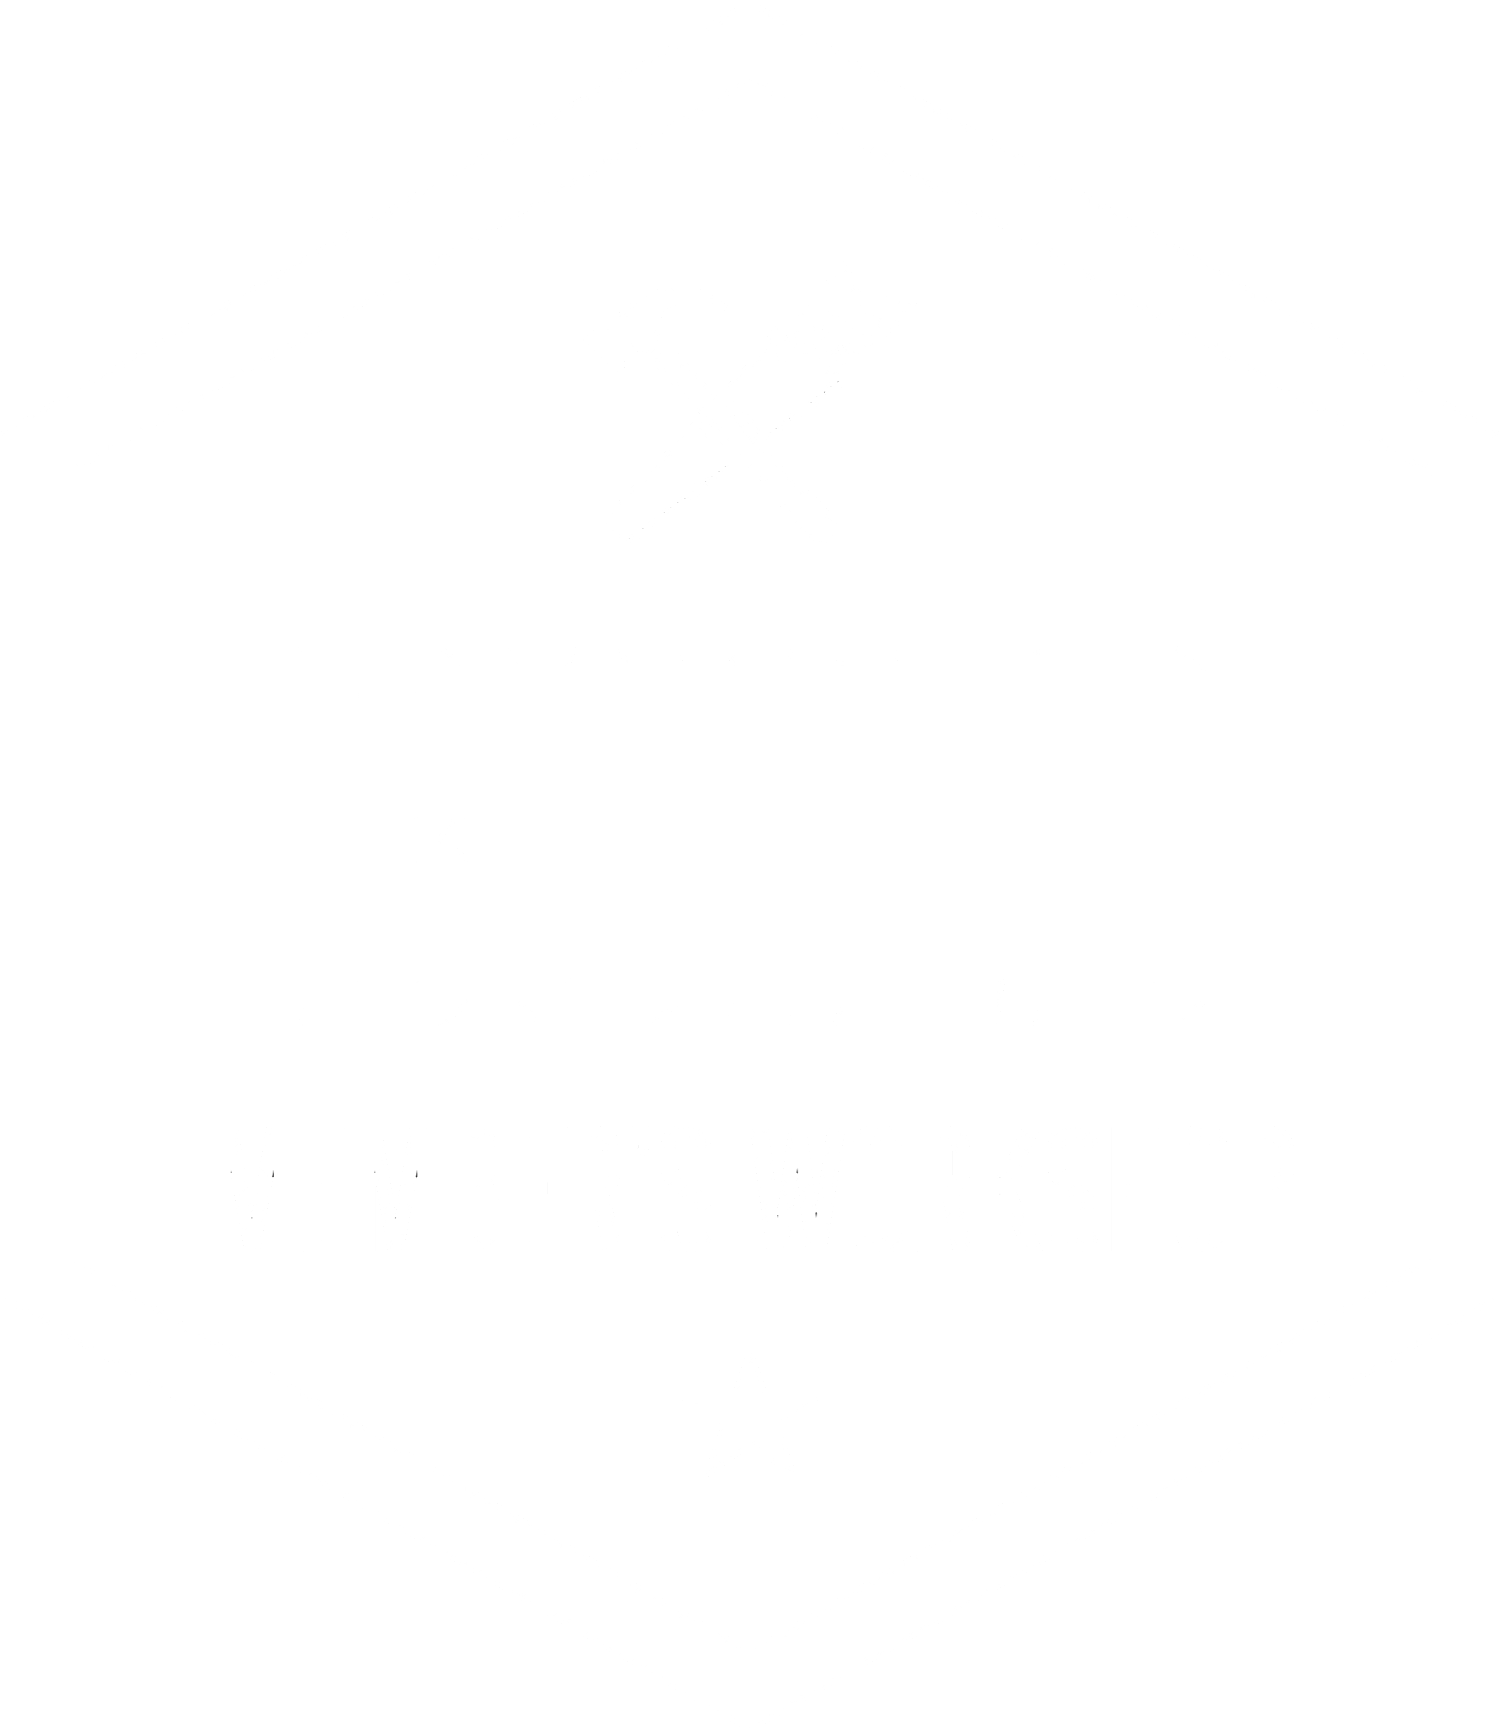 Build Member's Workshop